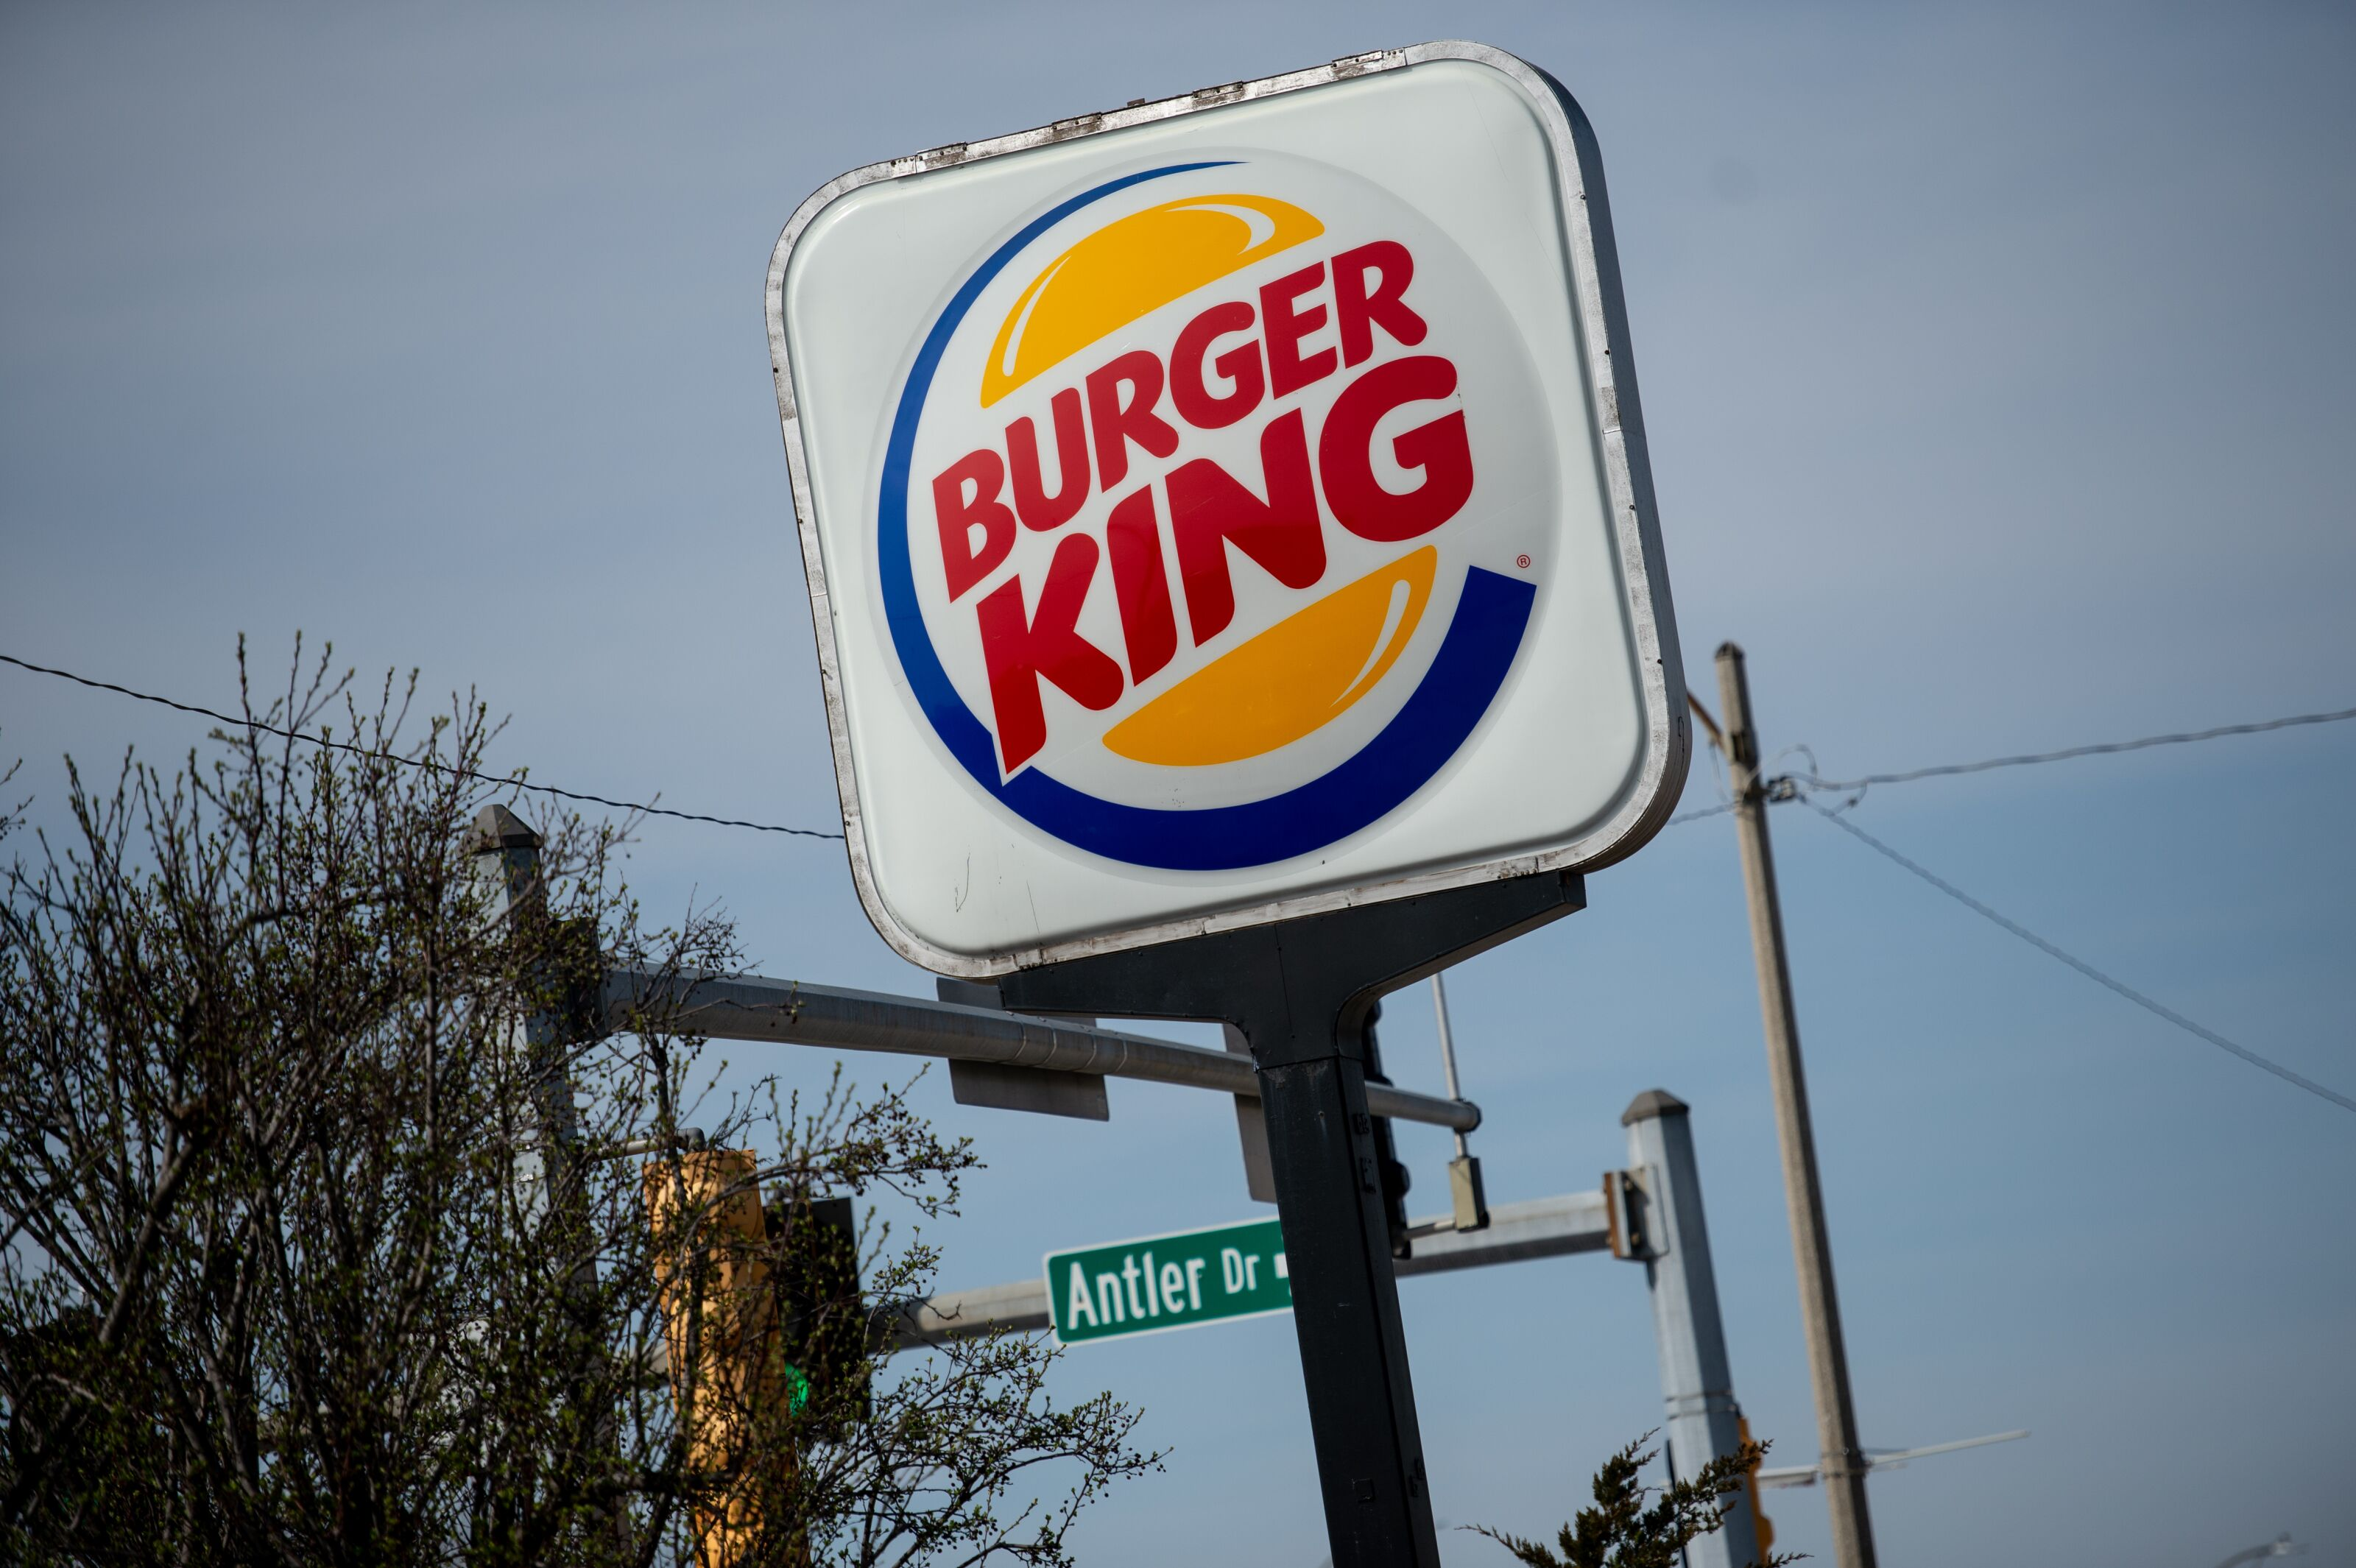 Burger King is running out of Zesty sauce and soon